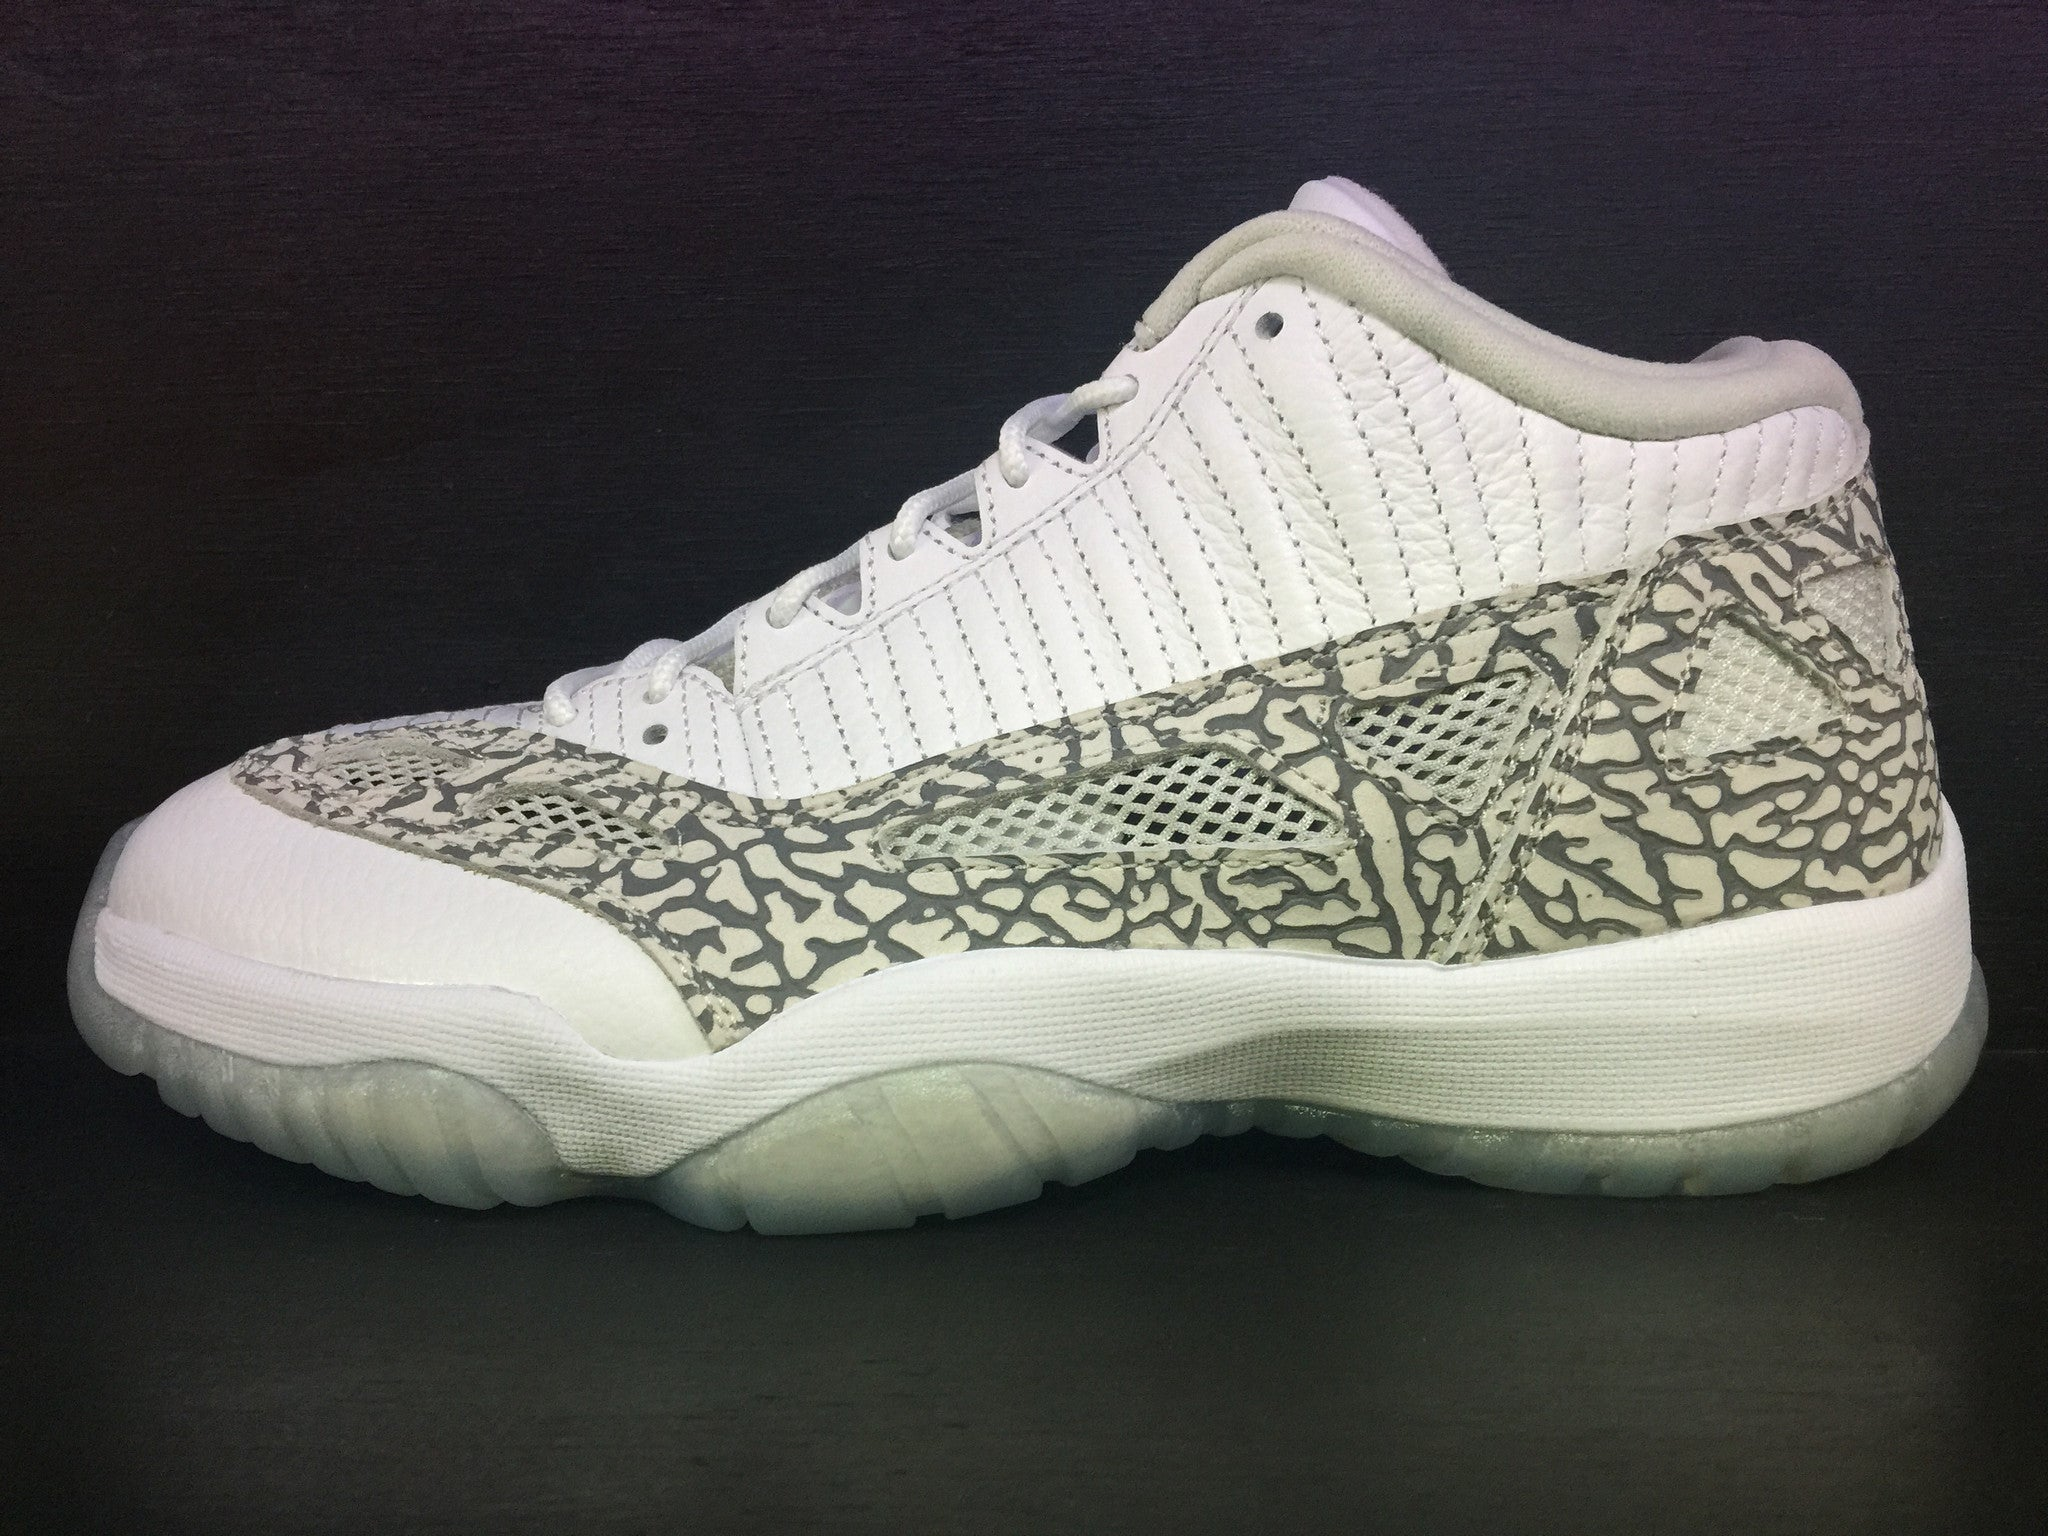 Air Jordan 11 Low Retro IE 'Cobalt'